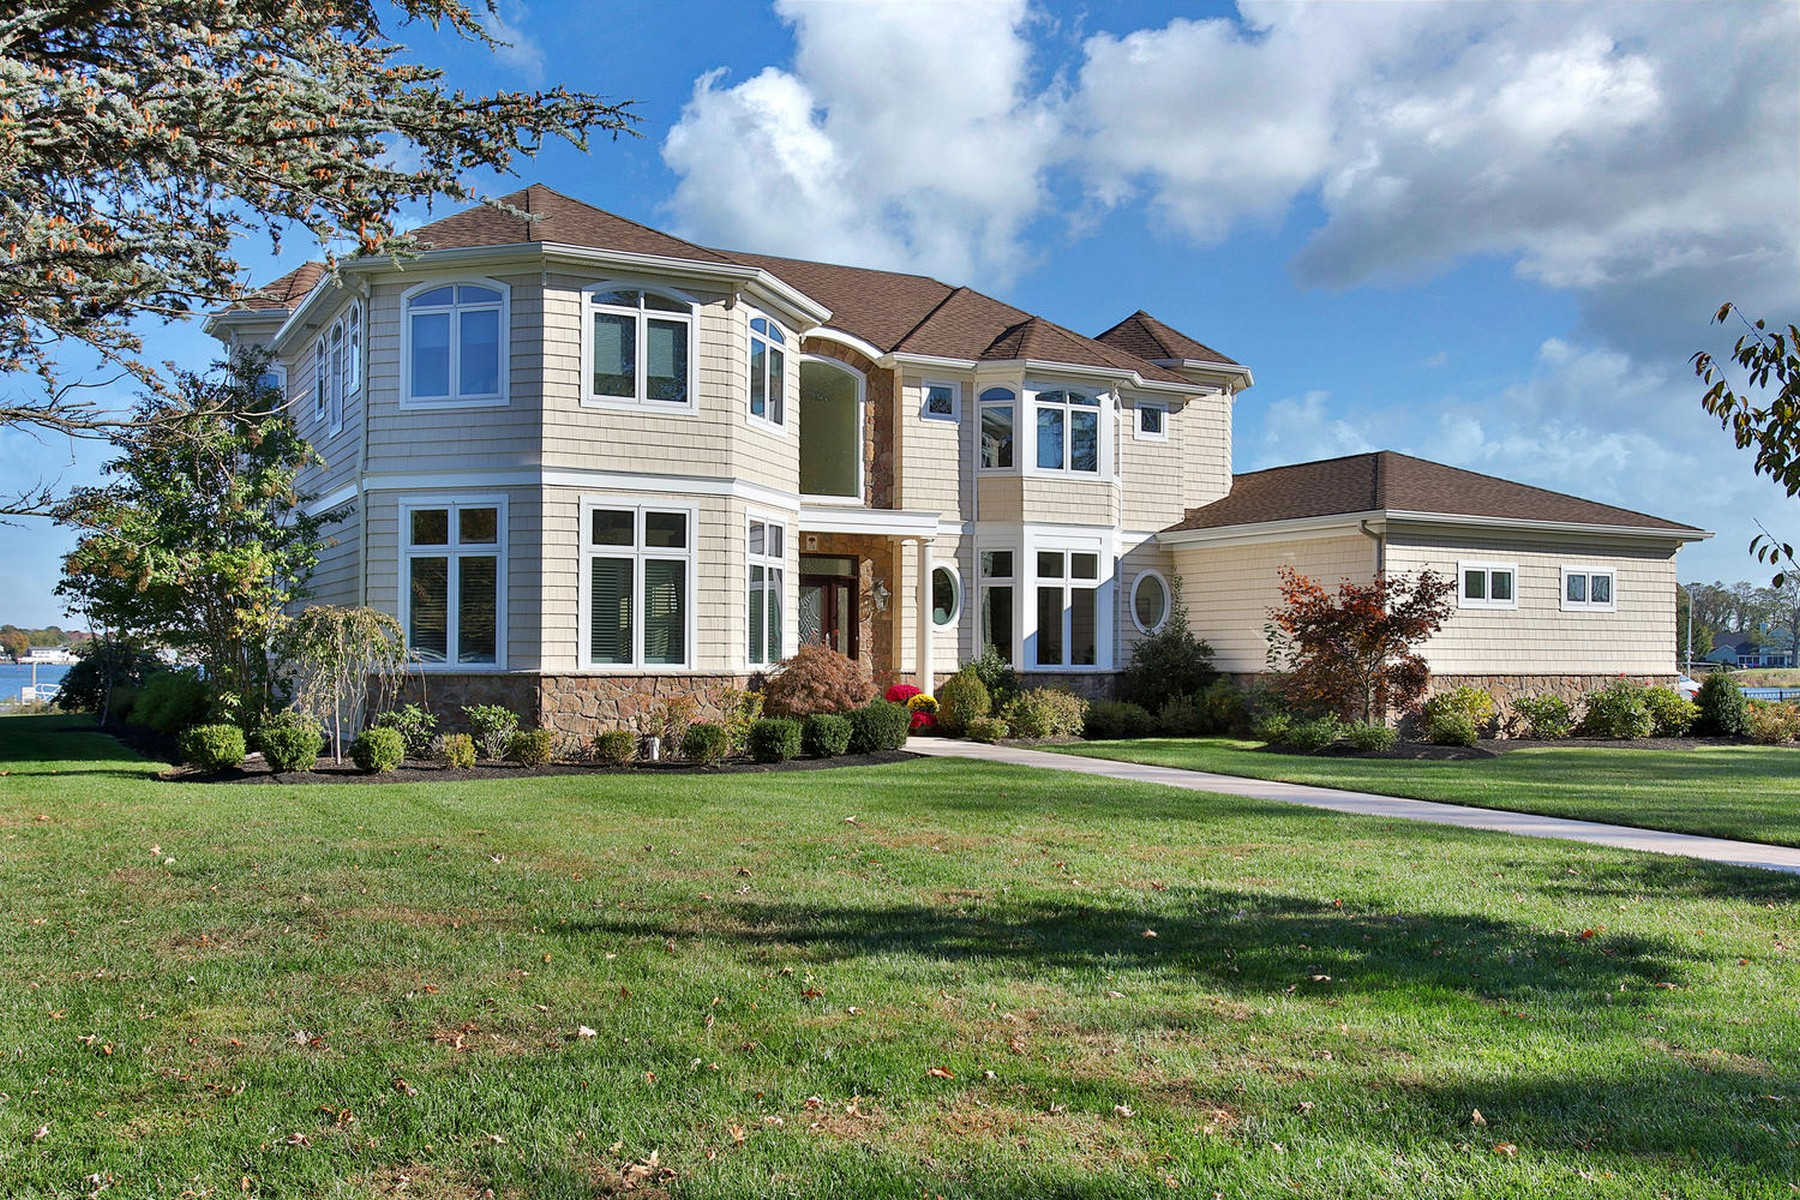 Single Family Home for Sale at Stunning Riverfont 74 Rivers Edge Dr. Little Silver, New Jersey 07739 United States